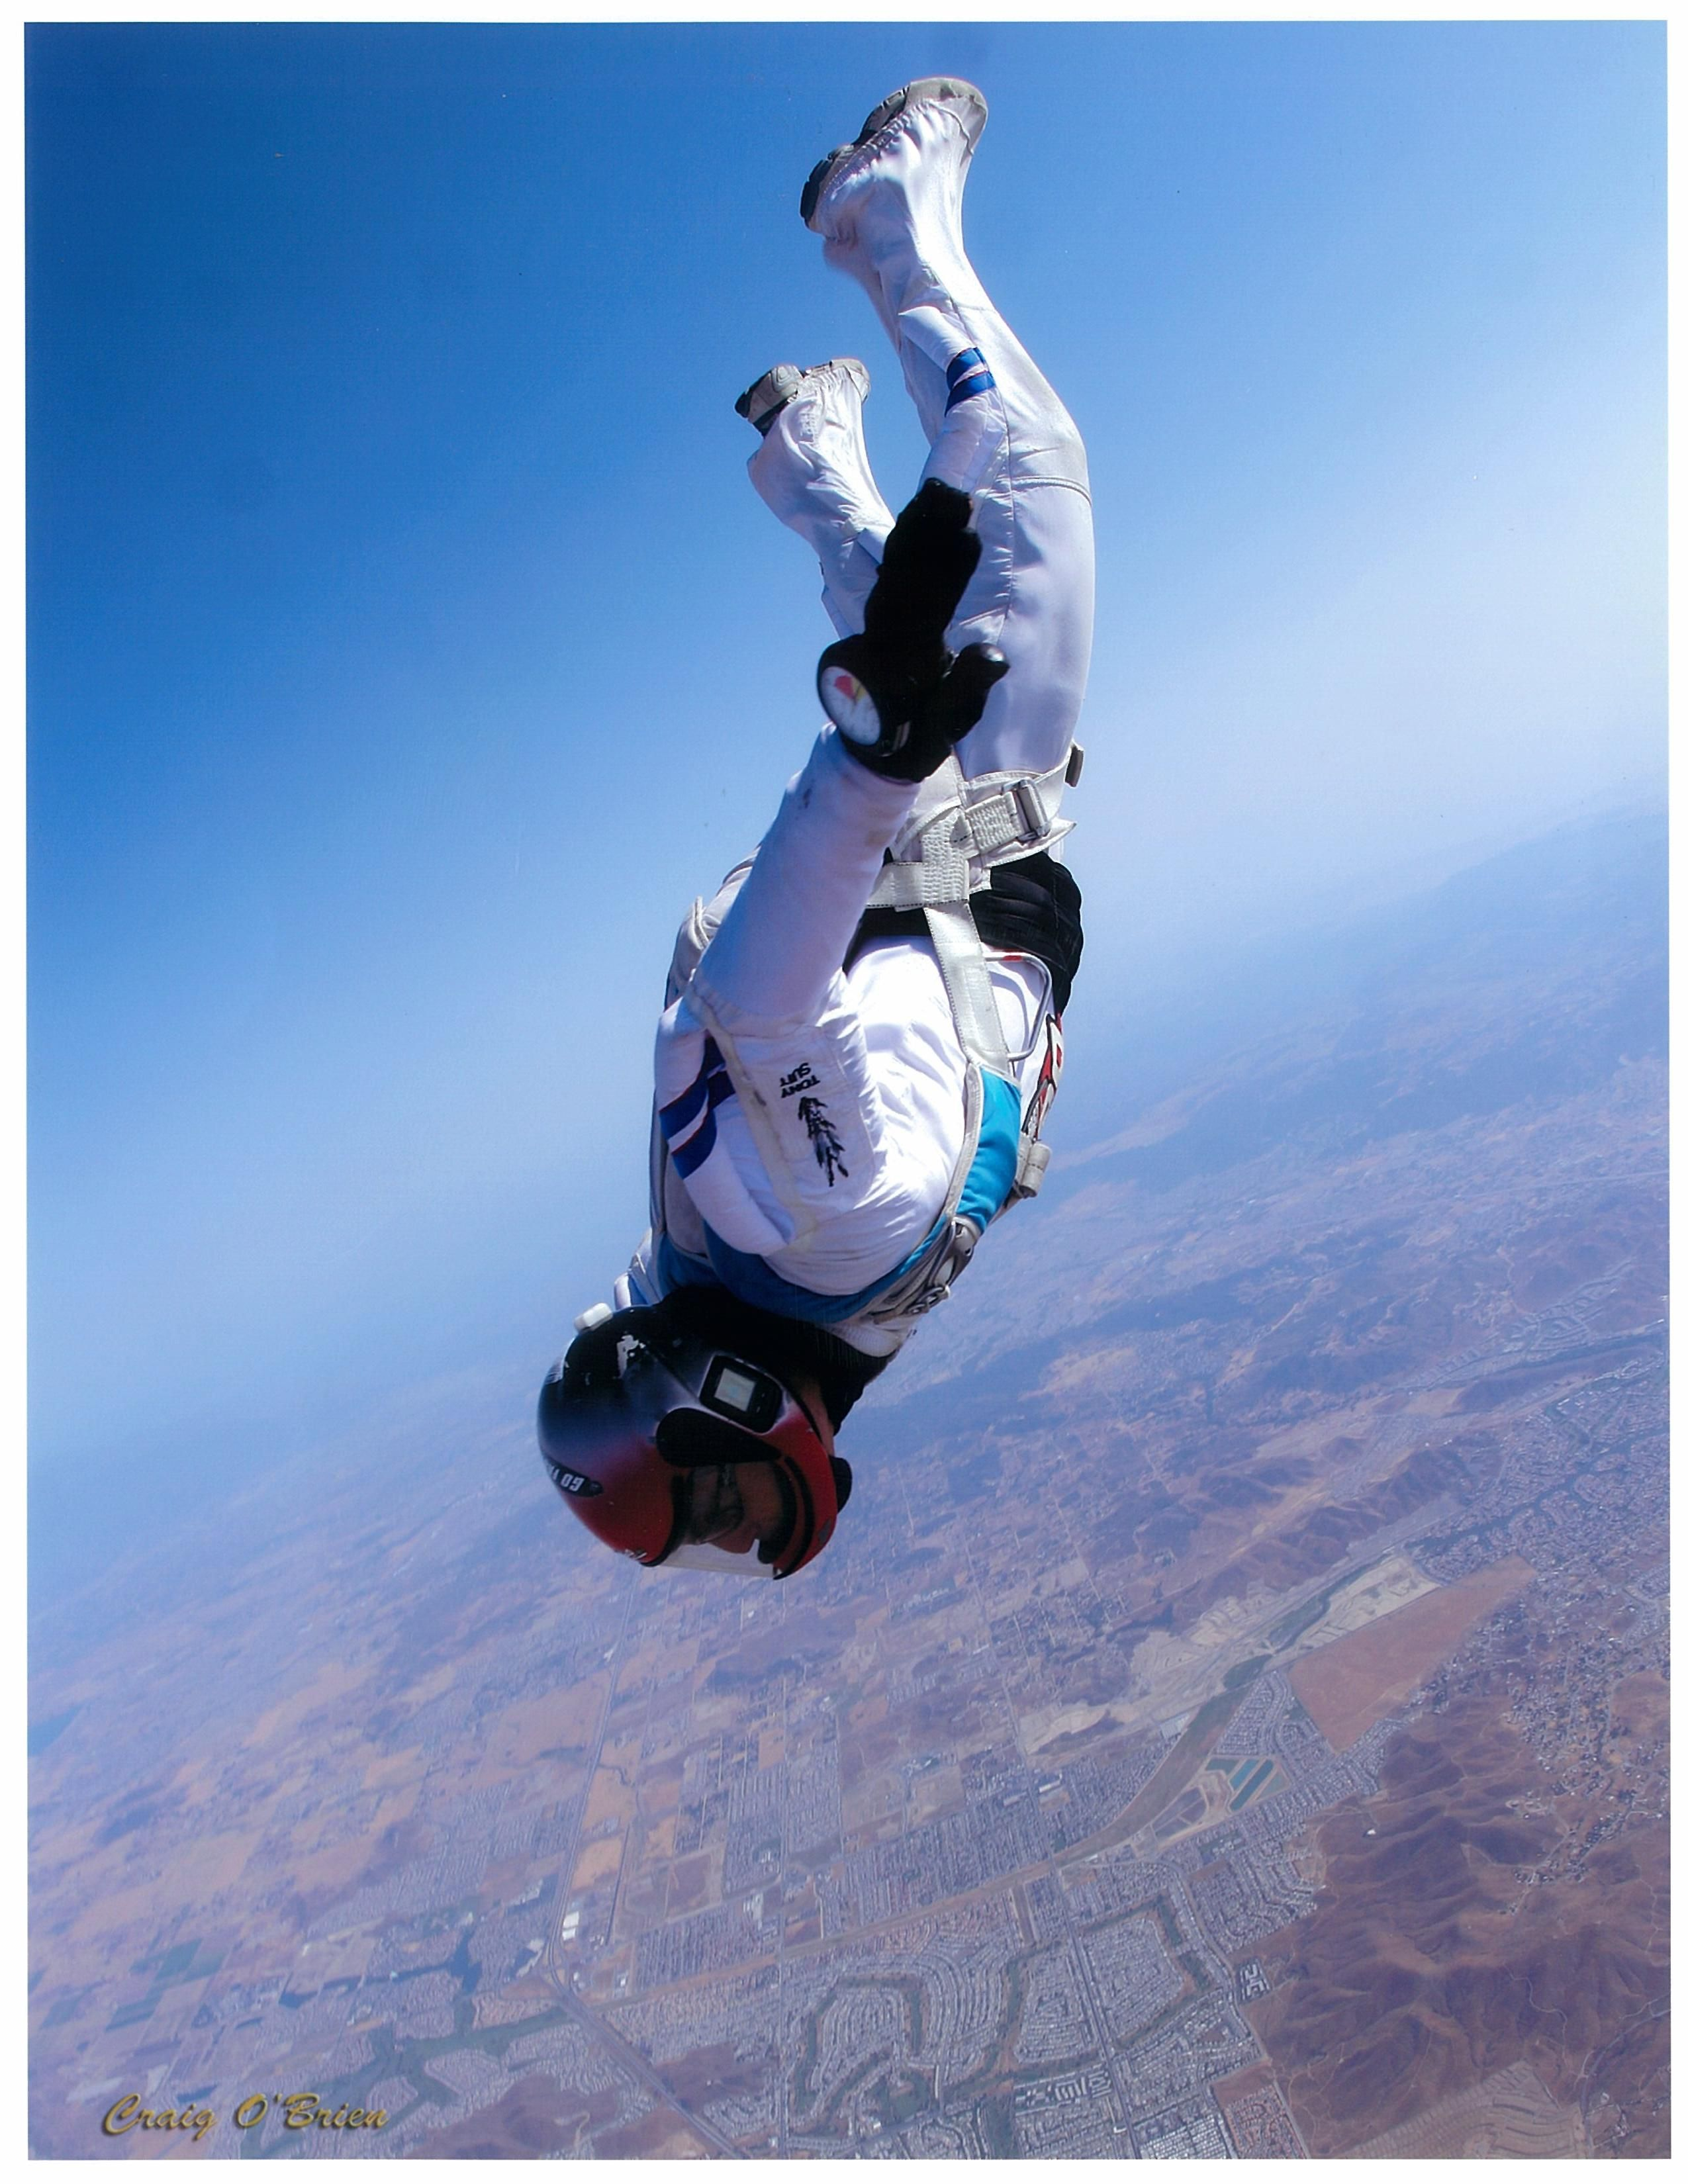 I want to do this before I die ^_^